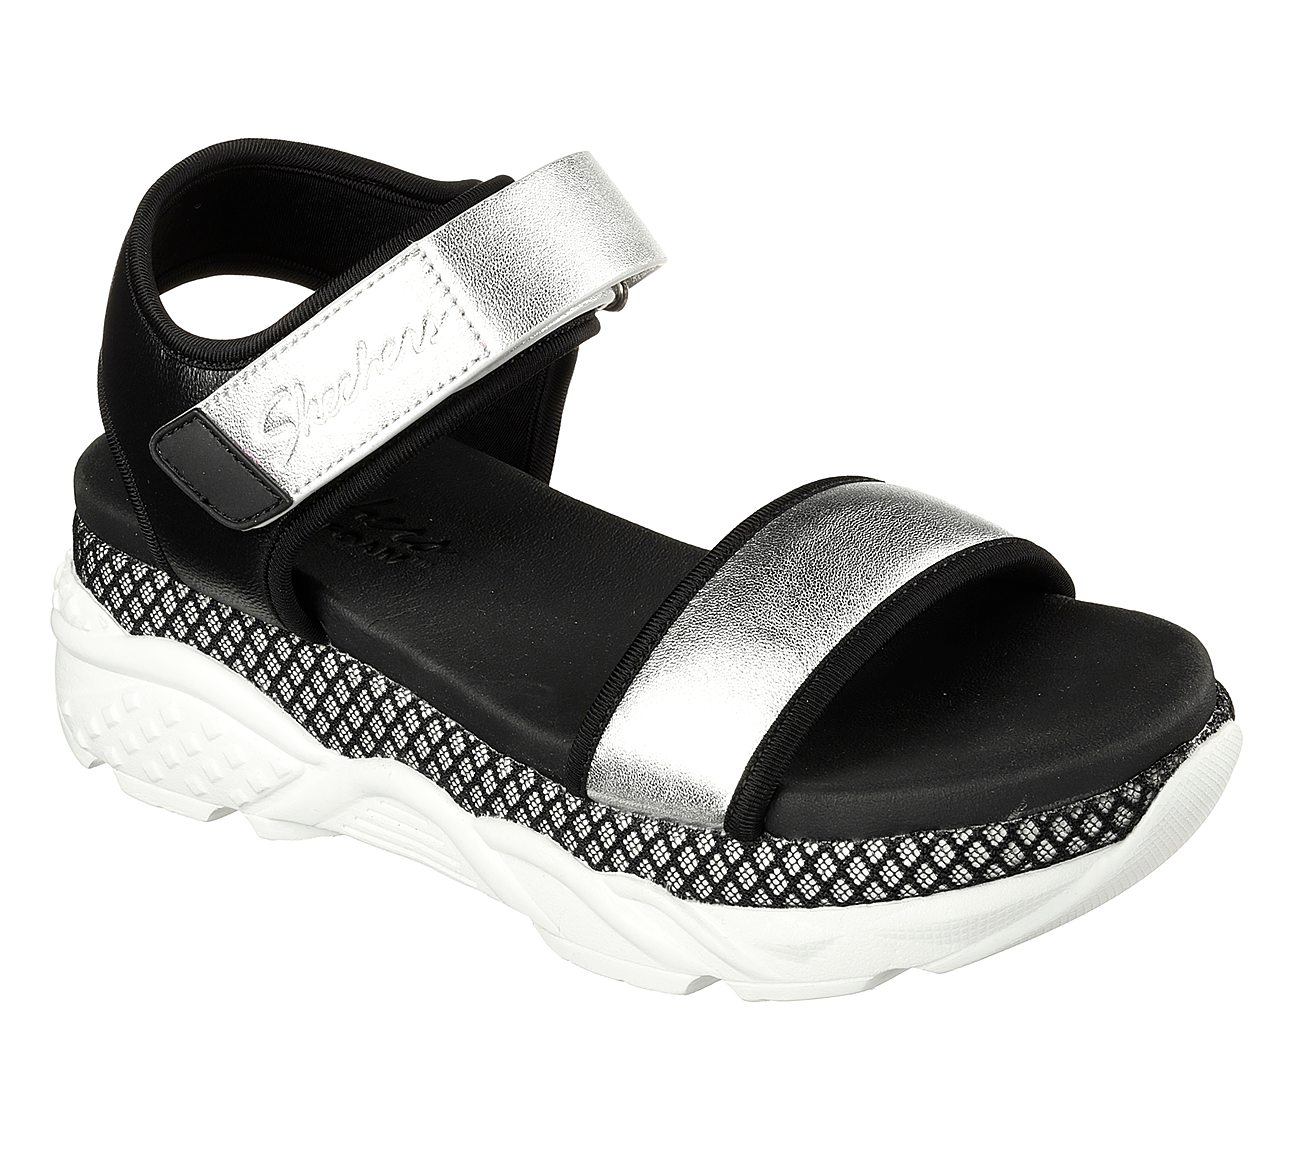 cfbfcf3c4a1 Buy SKECHERS Cloud9 Strappy Sandals Shoes only  70.00